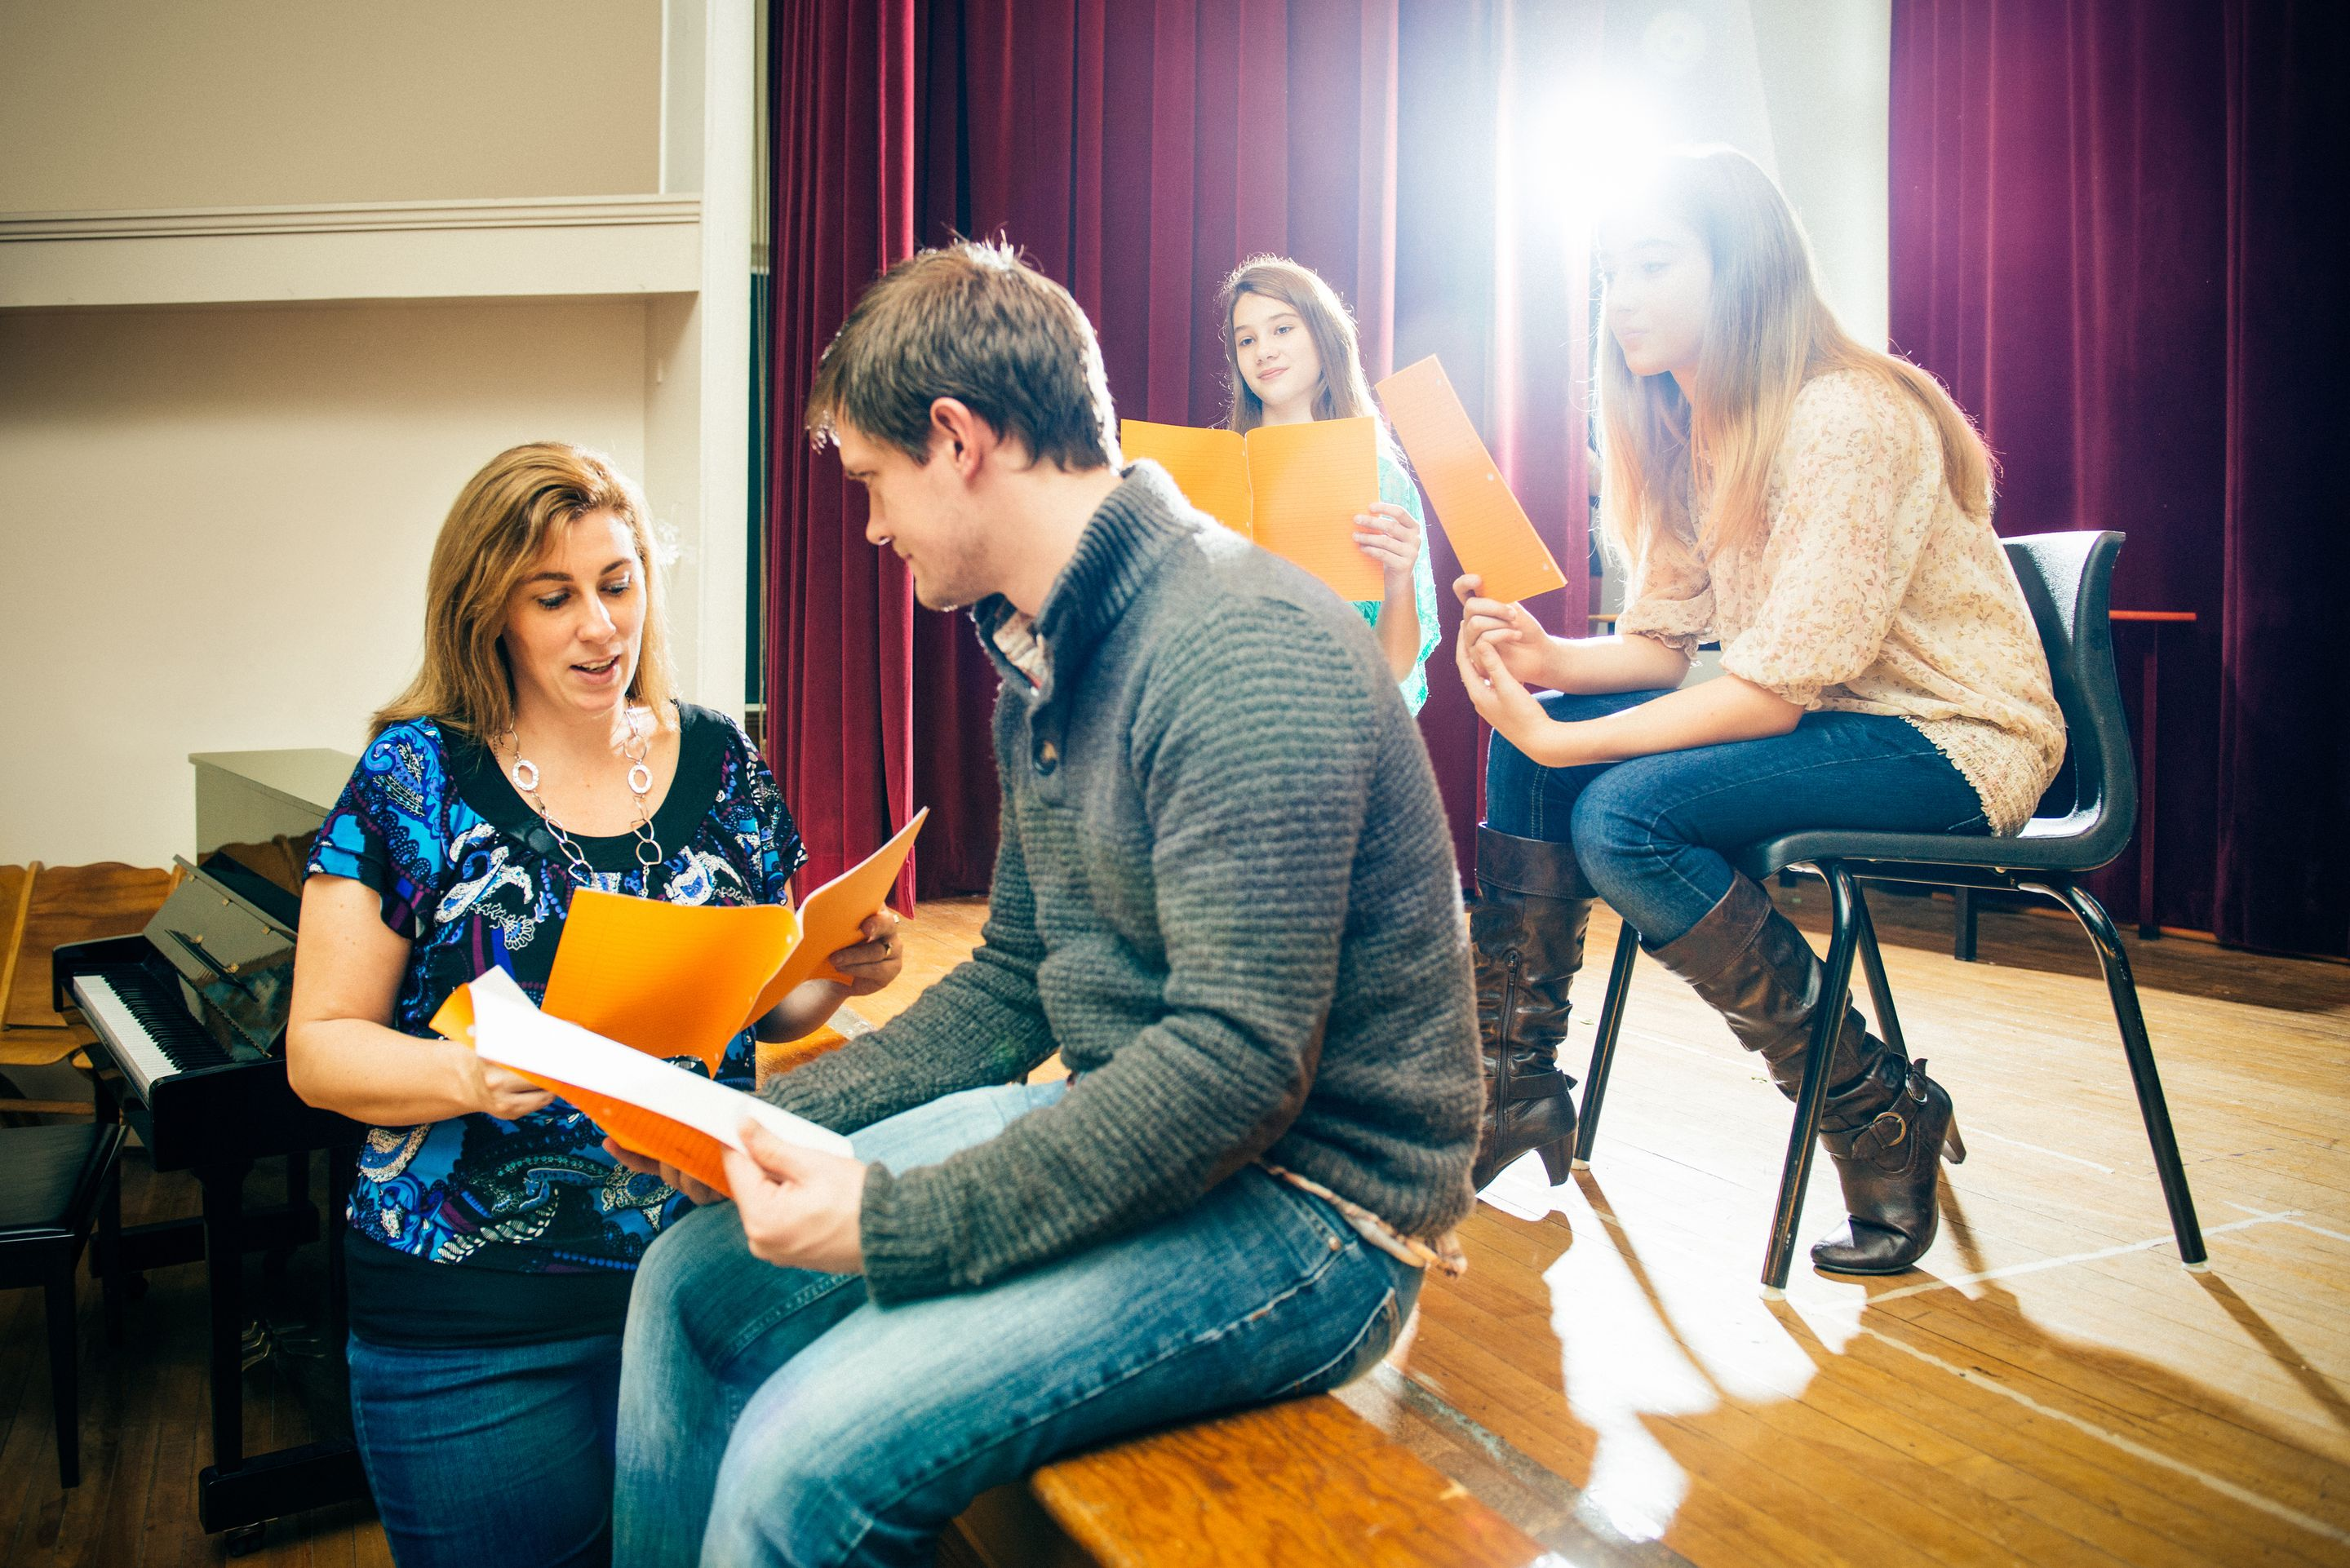 A group of high school students rehearse a scene from a play in a school auditorium